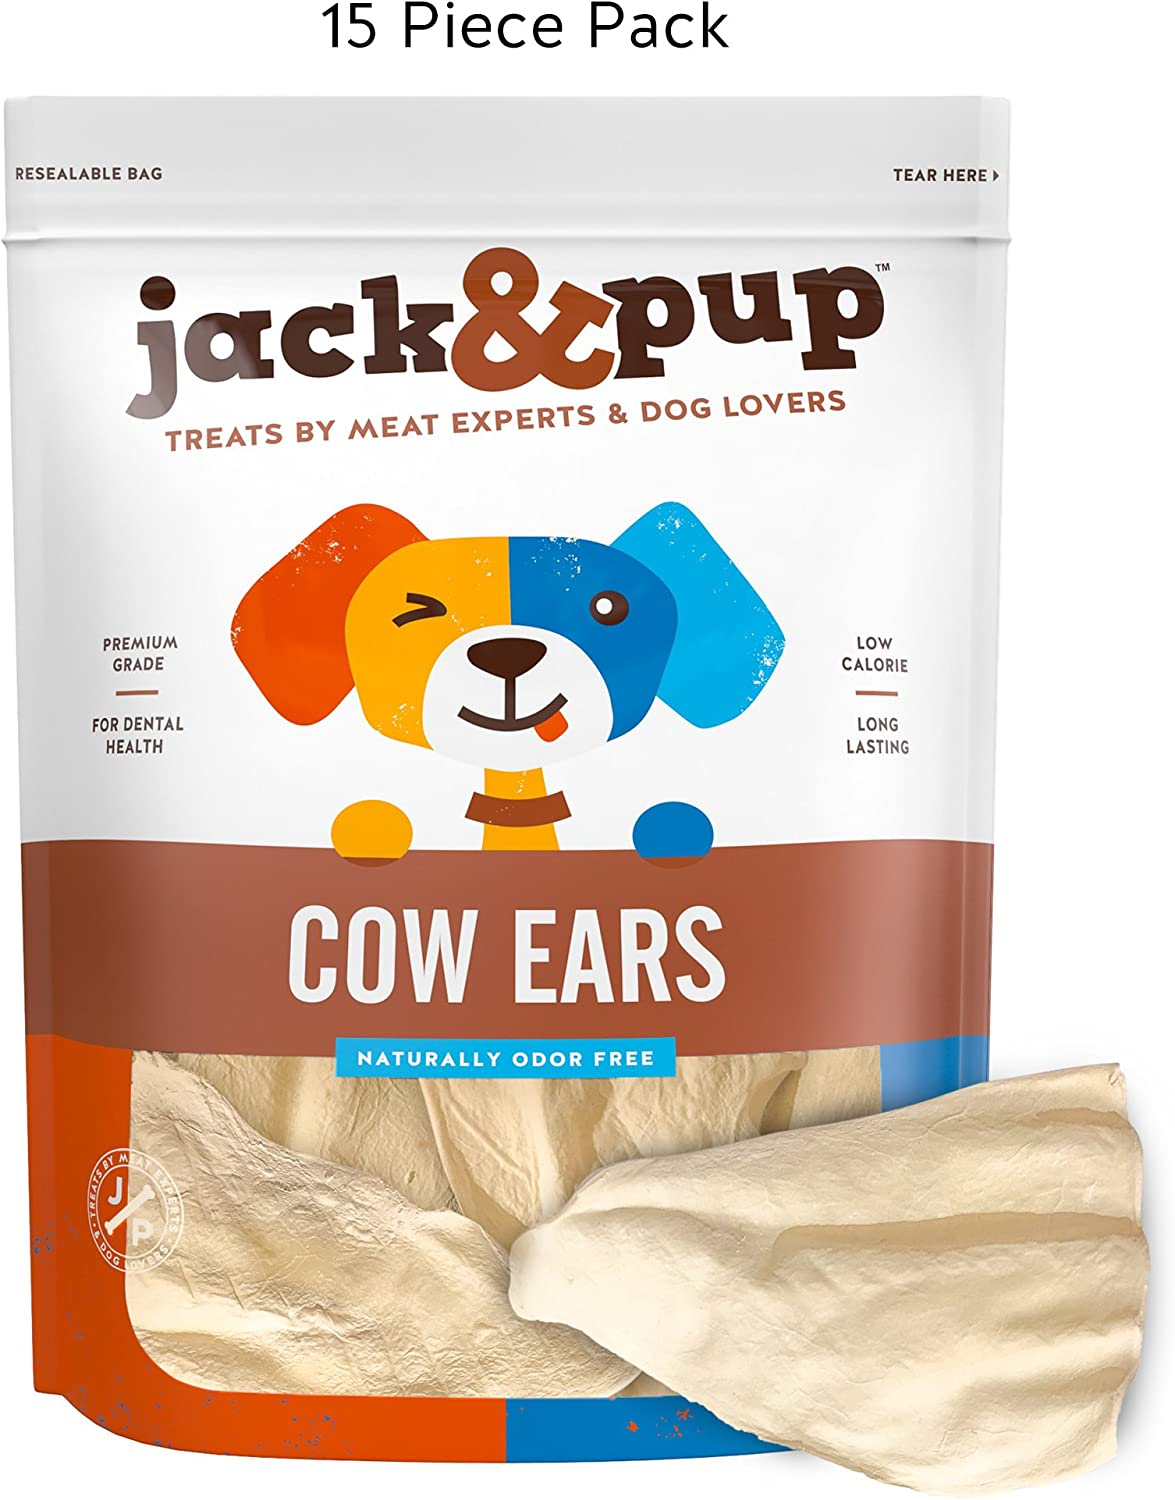 Jack Pup Prime Tender Hearty Thick Cow Ears Odor Free Dog Treats, 15 Pack Premium Grade Long Lasting All Natural and Unflavored Gourmet Dog Treat Chews Fresh Tasty Low-Calorie Treat